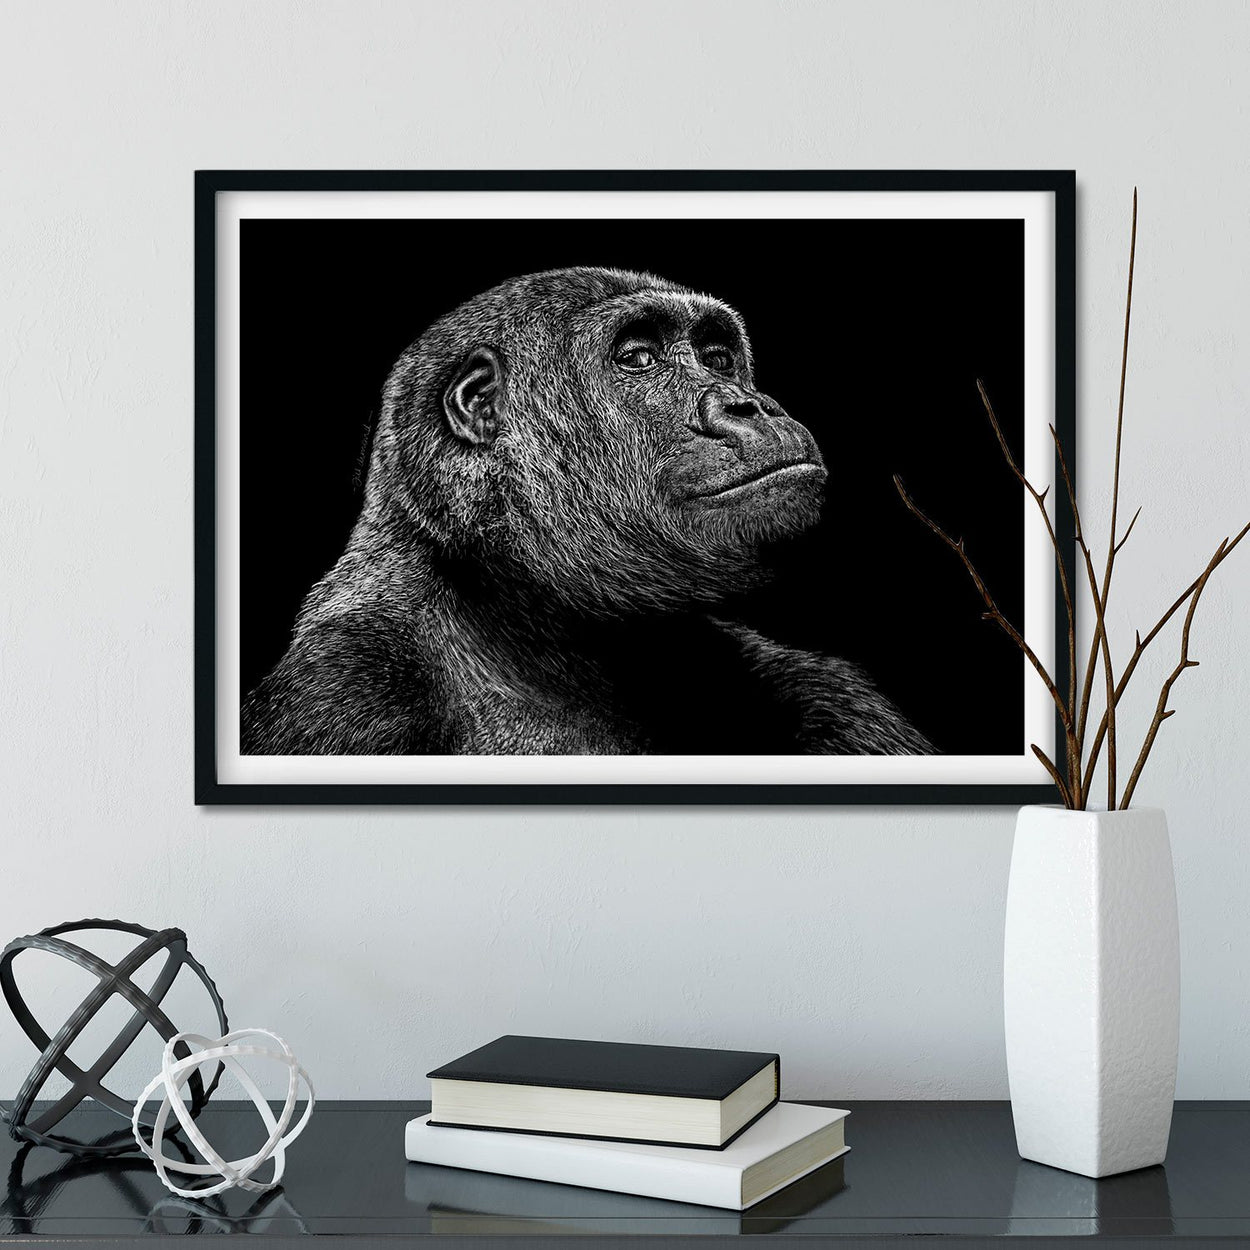 Gorilla Wall Art Frame - The Thriving Wild